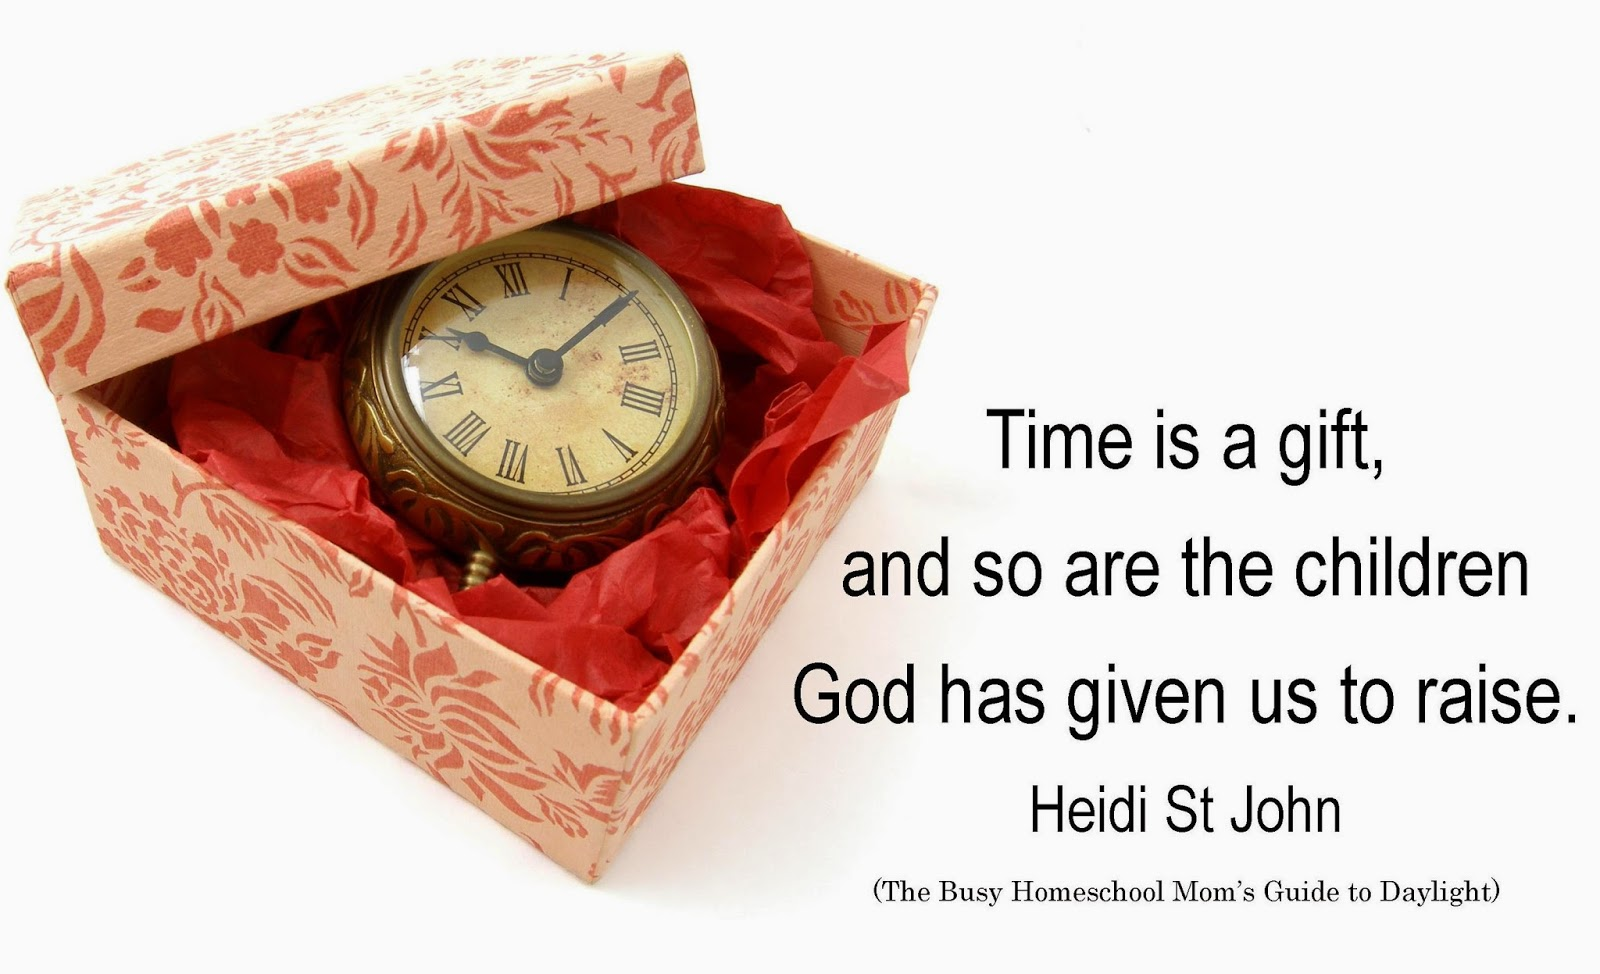 Time is a gift and so are the children God has given us to raise Heidi St John